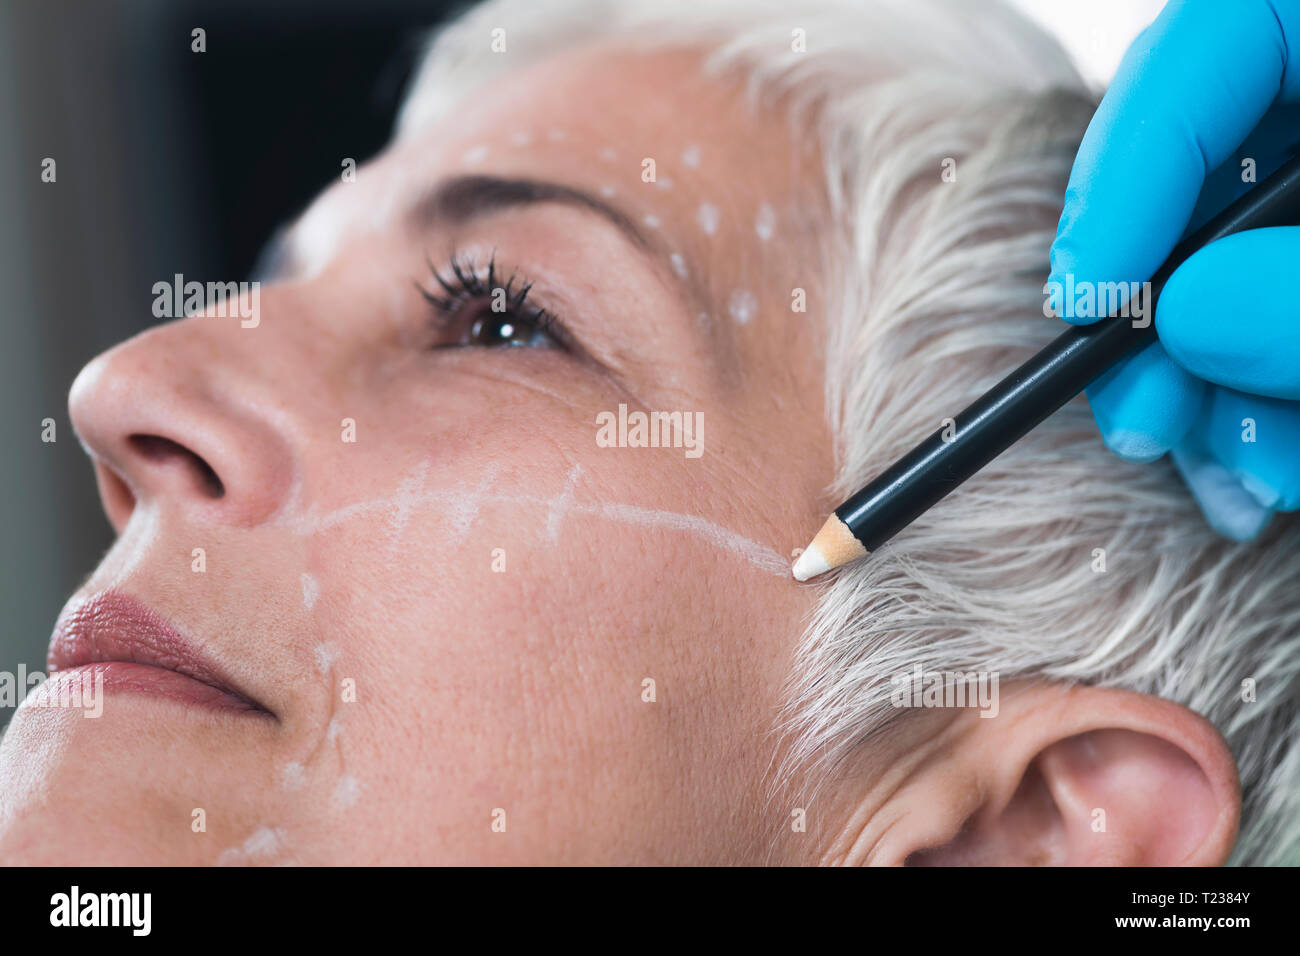 Doctor's hand in blue surgical glove marking senior women's face for cosmetic injections. - Stock Image